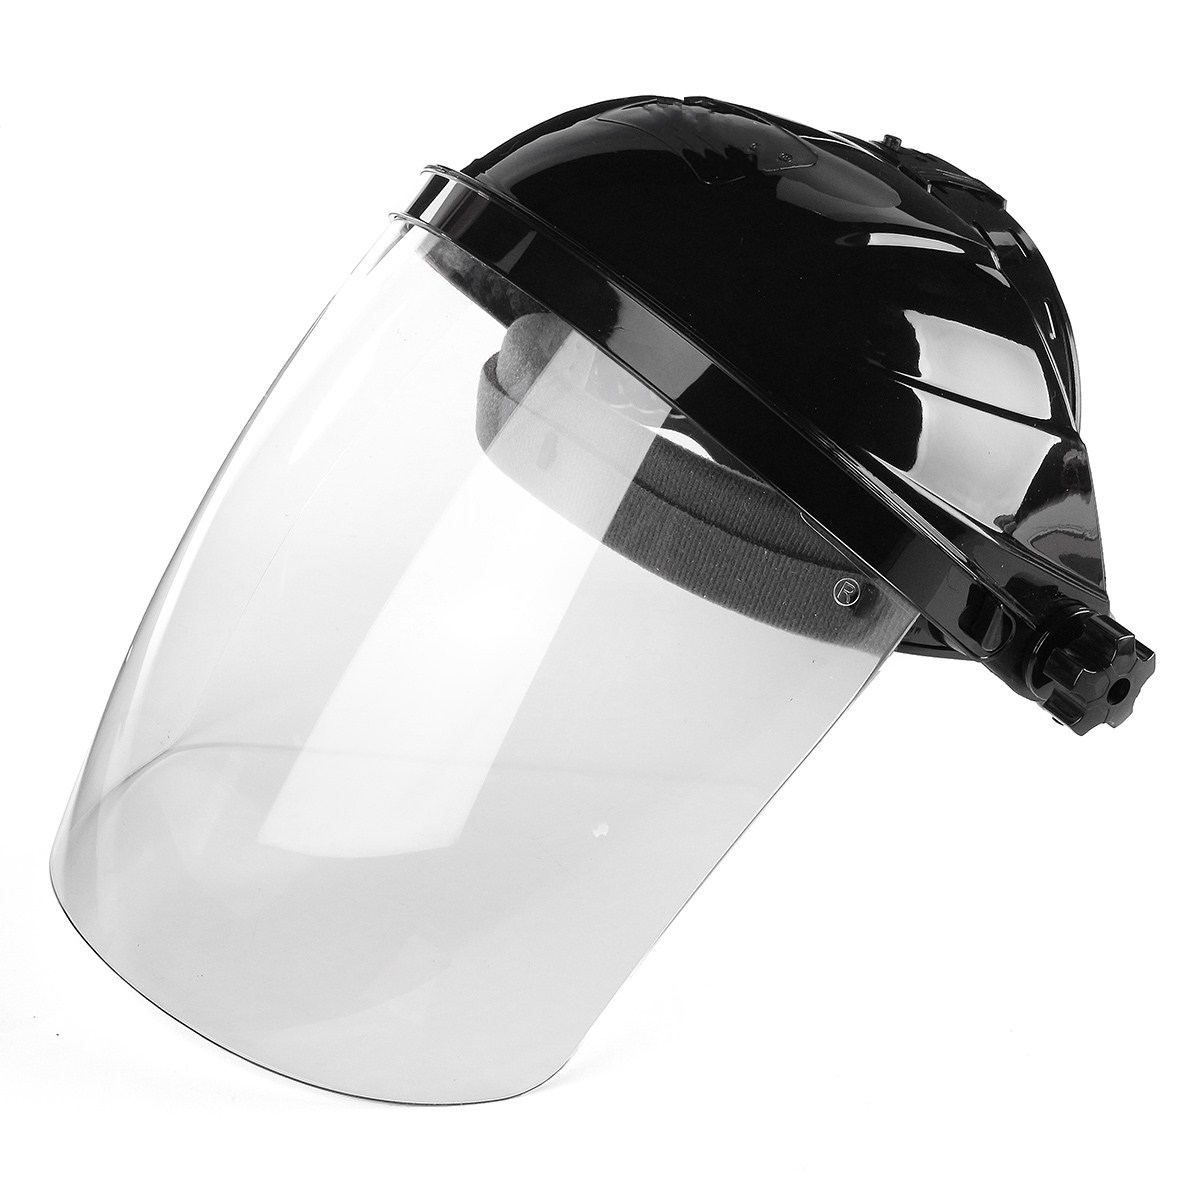 New Transparent Lens Anti-UV Anti-shock Welding Helmet Face Shield Solder Mask Face Eye Protect Shield Anti-shock transparent lens anti uv anti shock welding helmet face shield solder mask face eye protect shield anti shock